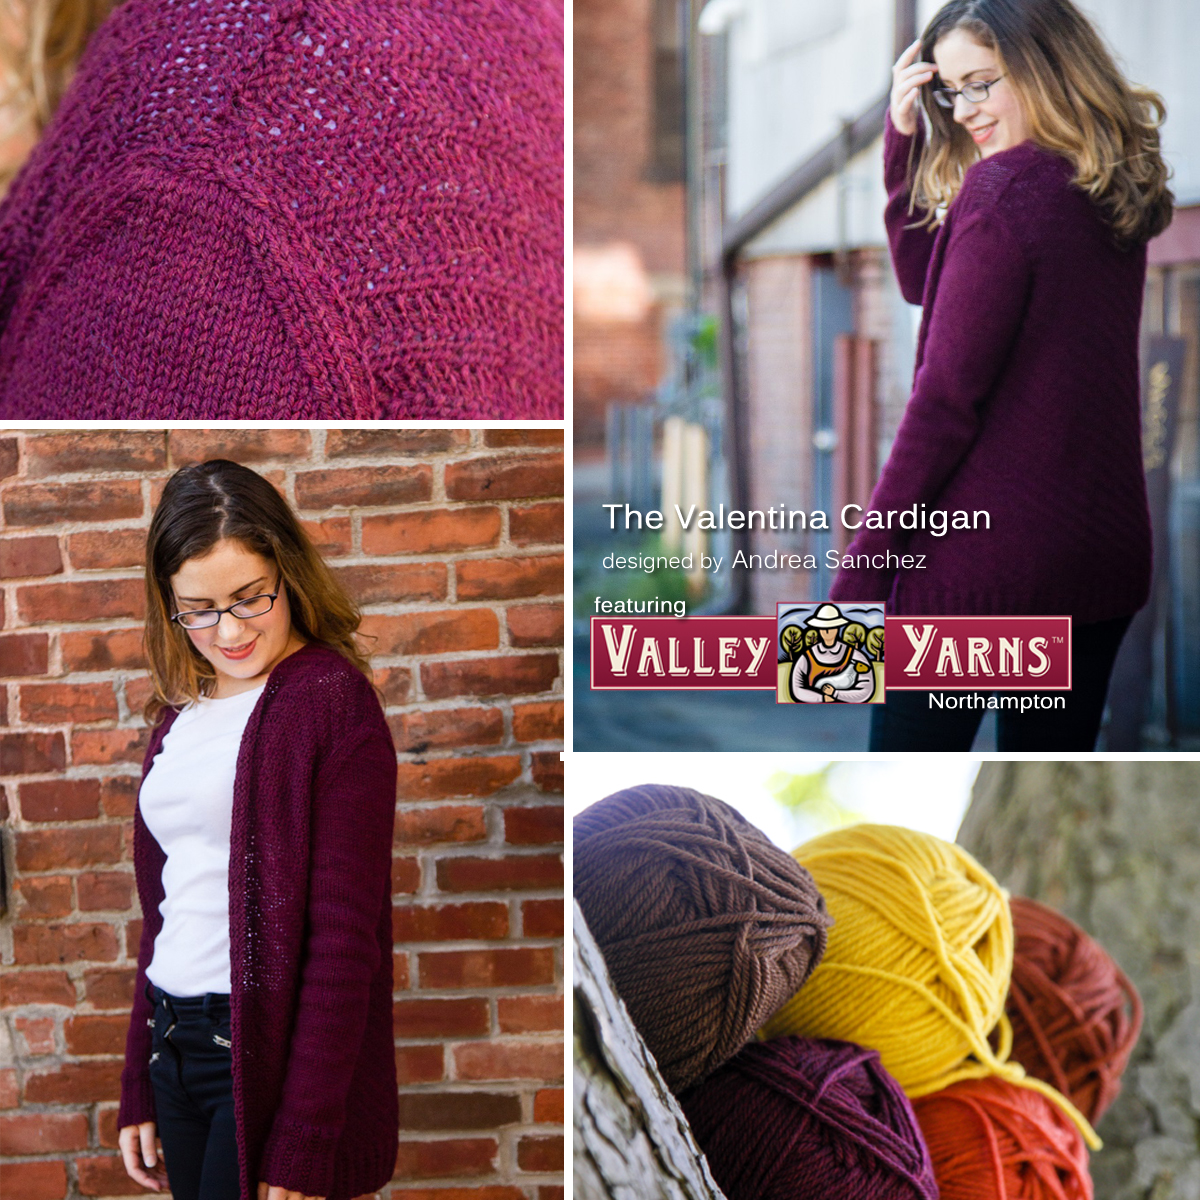 Get your copy of the Valentina Cardigan PDF and Valley Yarns Northampton at yarn.com Read more on the WEBS blog at blog.yarn.com